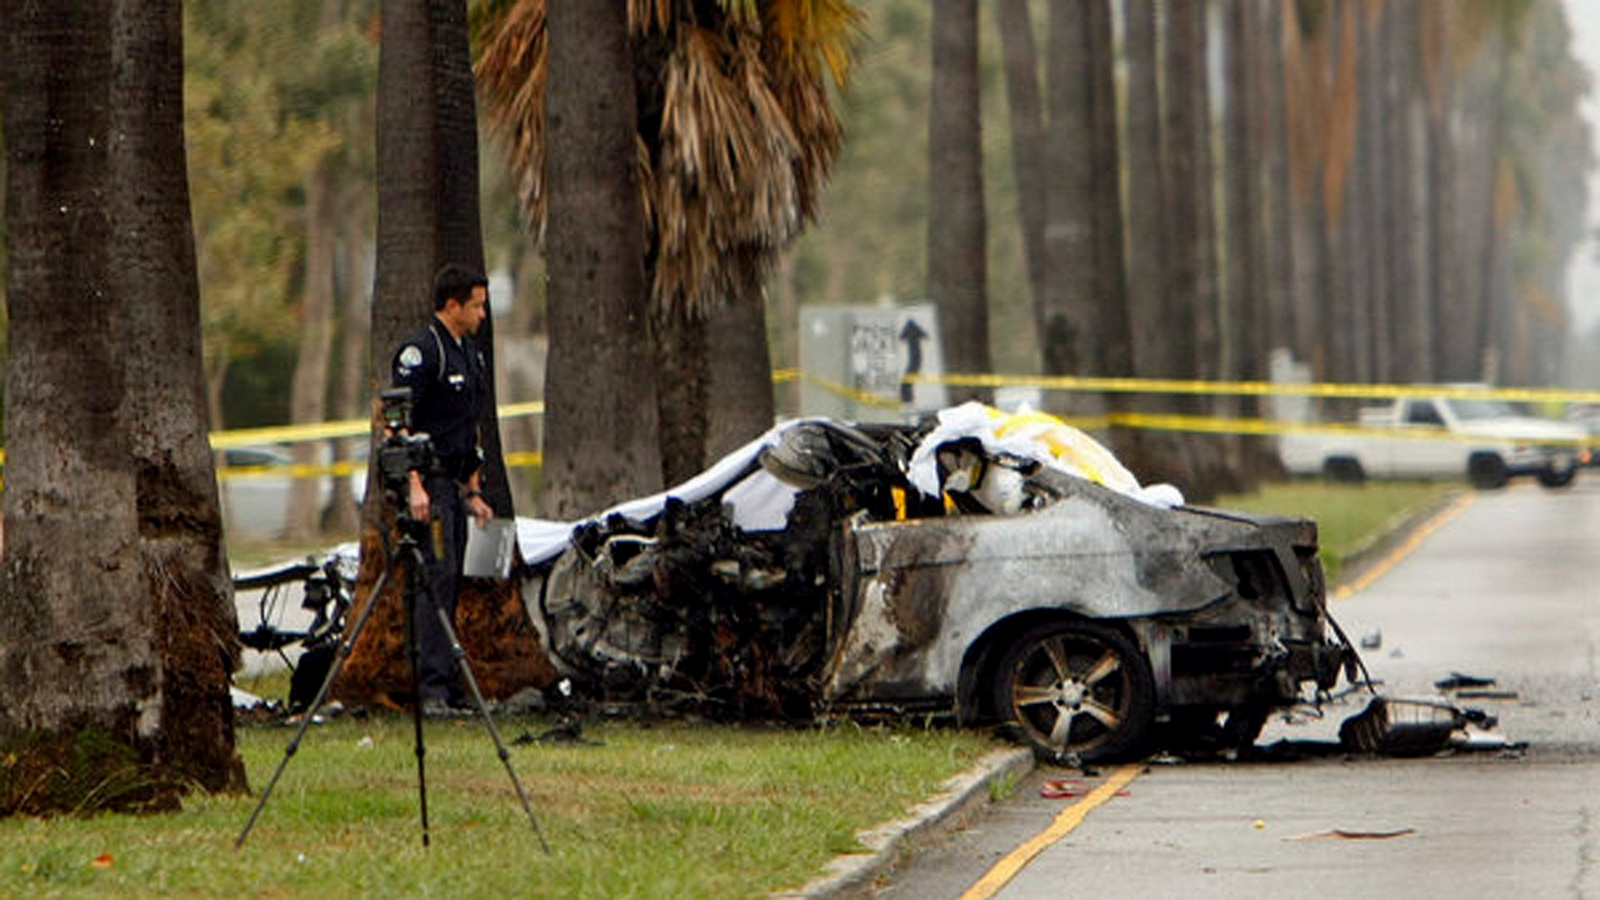 An LAPD officer investigates the scene of a single-vehicle accident in which journalist Michael Hastings was killed. (Photo: Al Seib/LA Times)